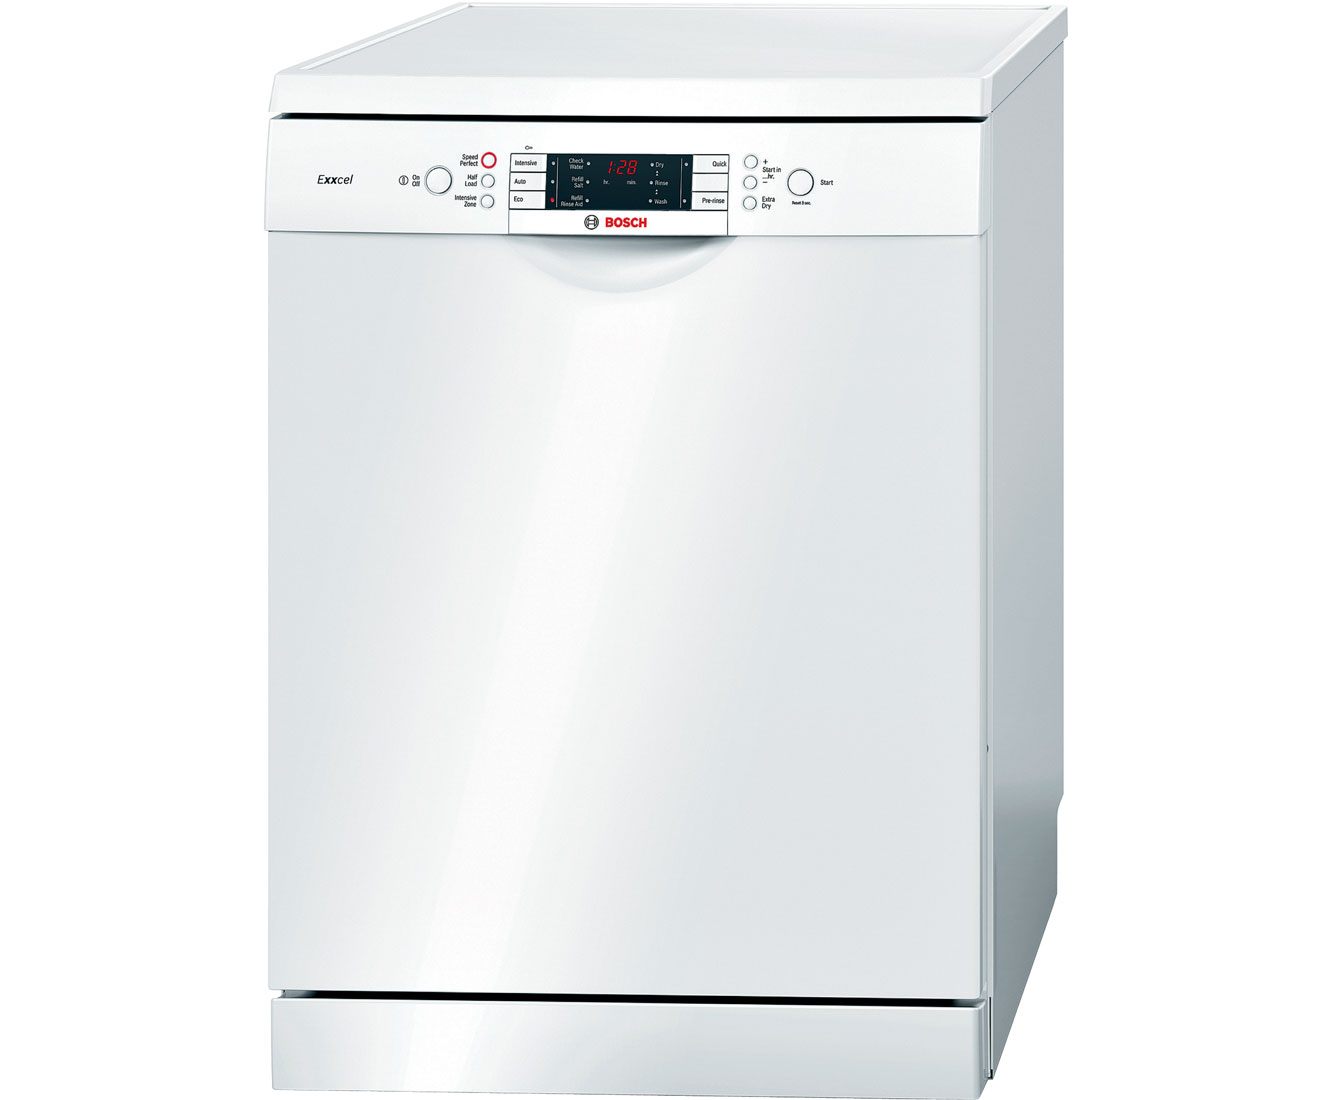 Bosch Exxcel SMS58E22GB Standard Dishwasher - White